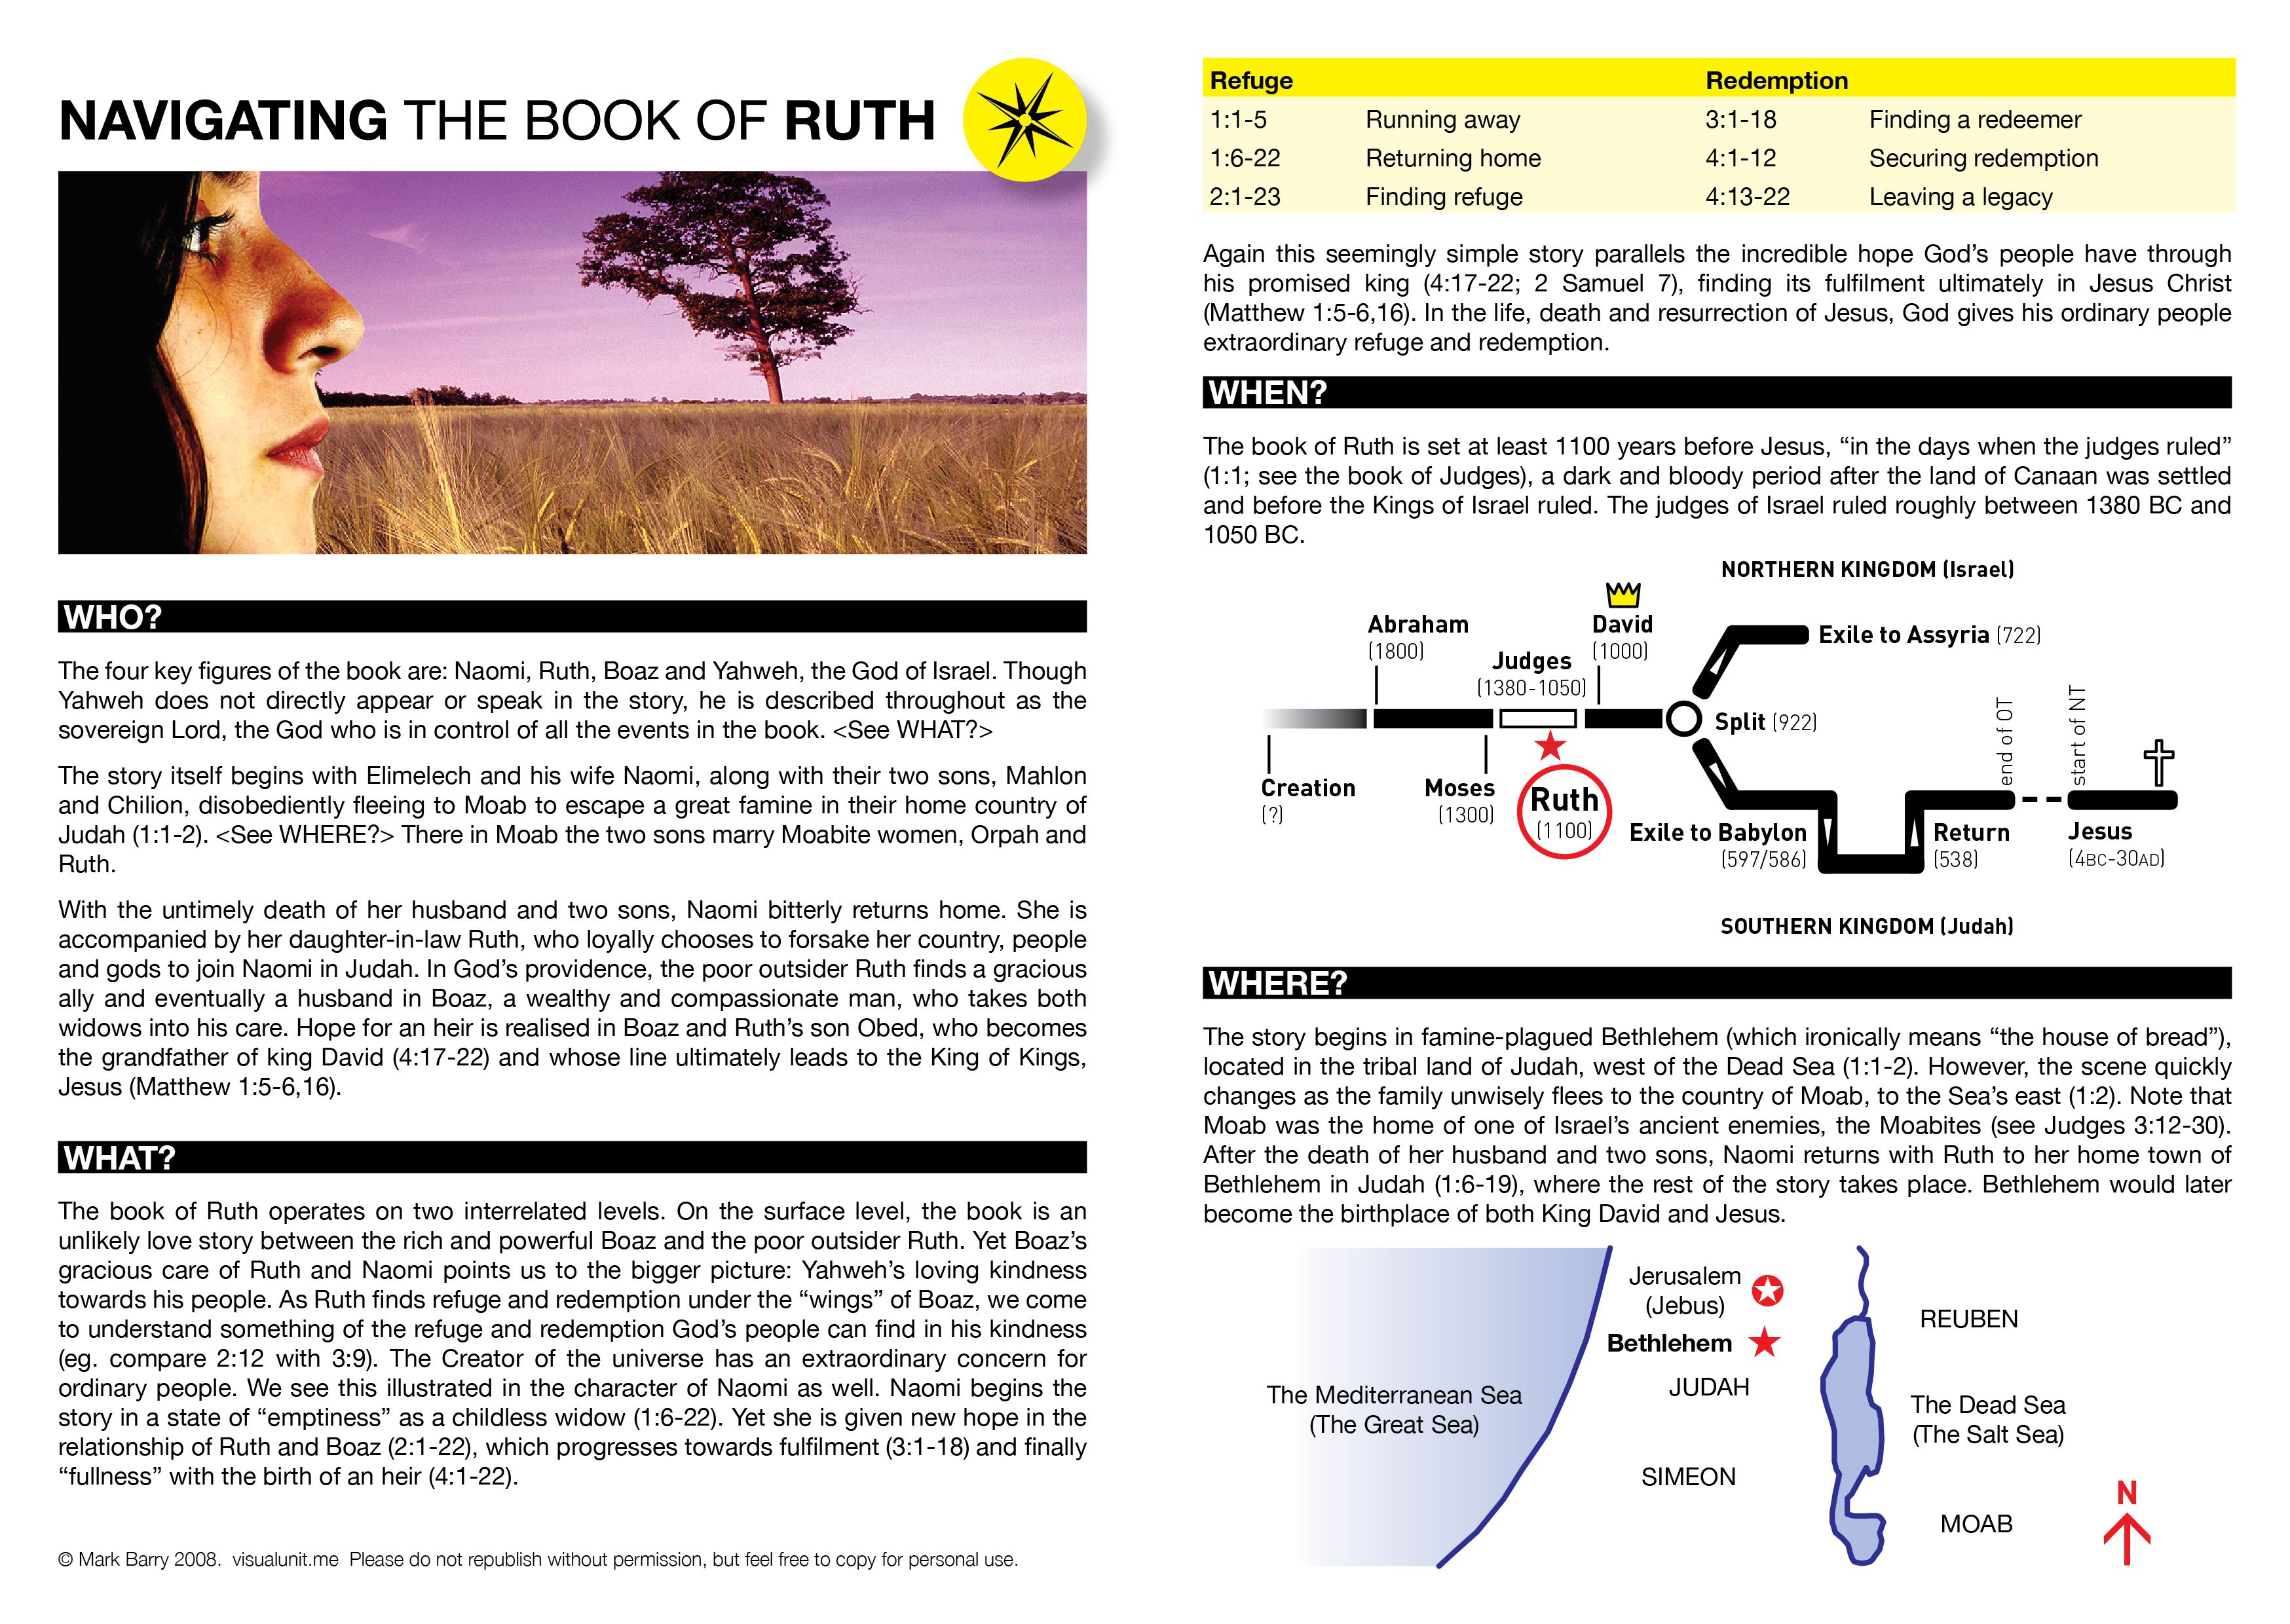 A basic introduction to the book of Ruth: Who? What? When? Where? PDF version(464 KB)